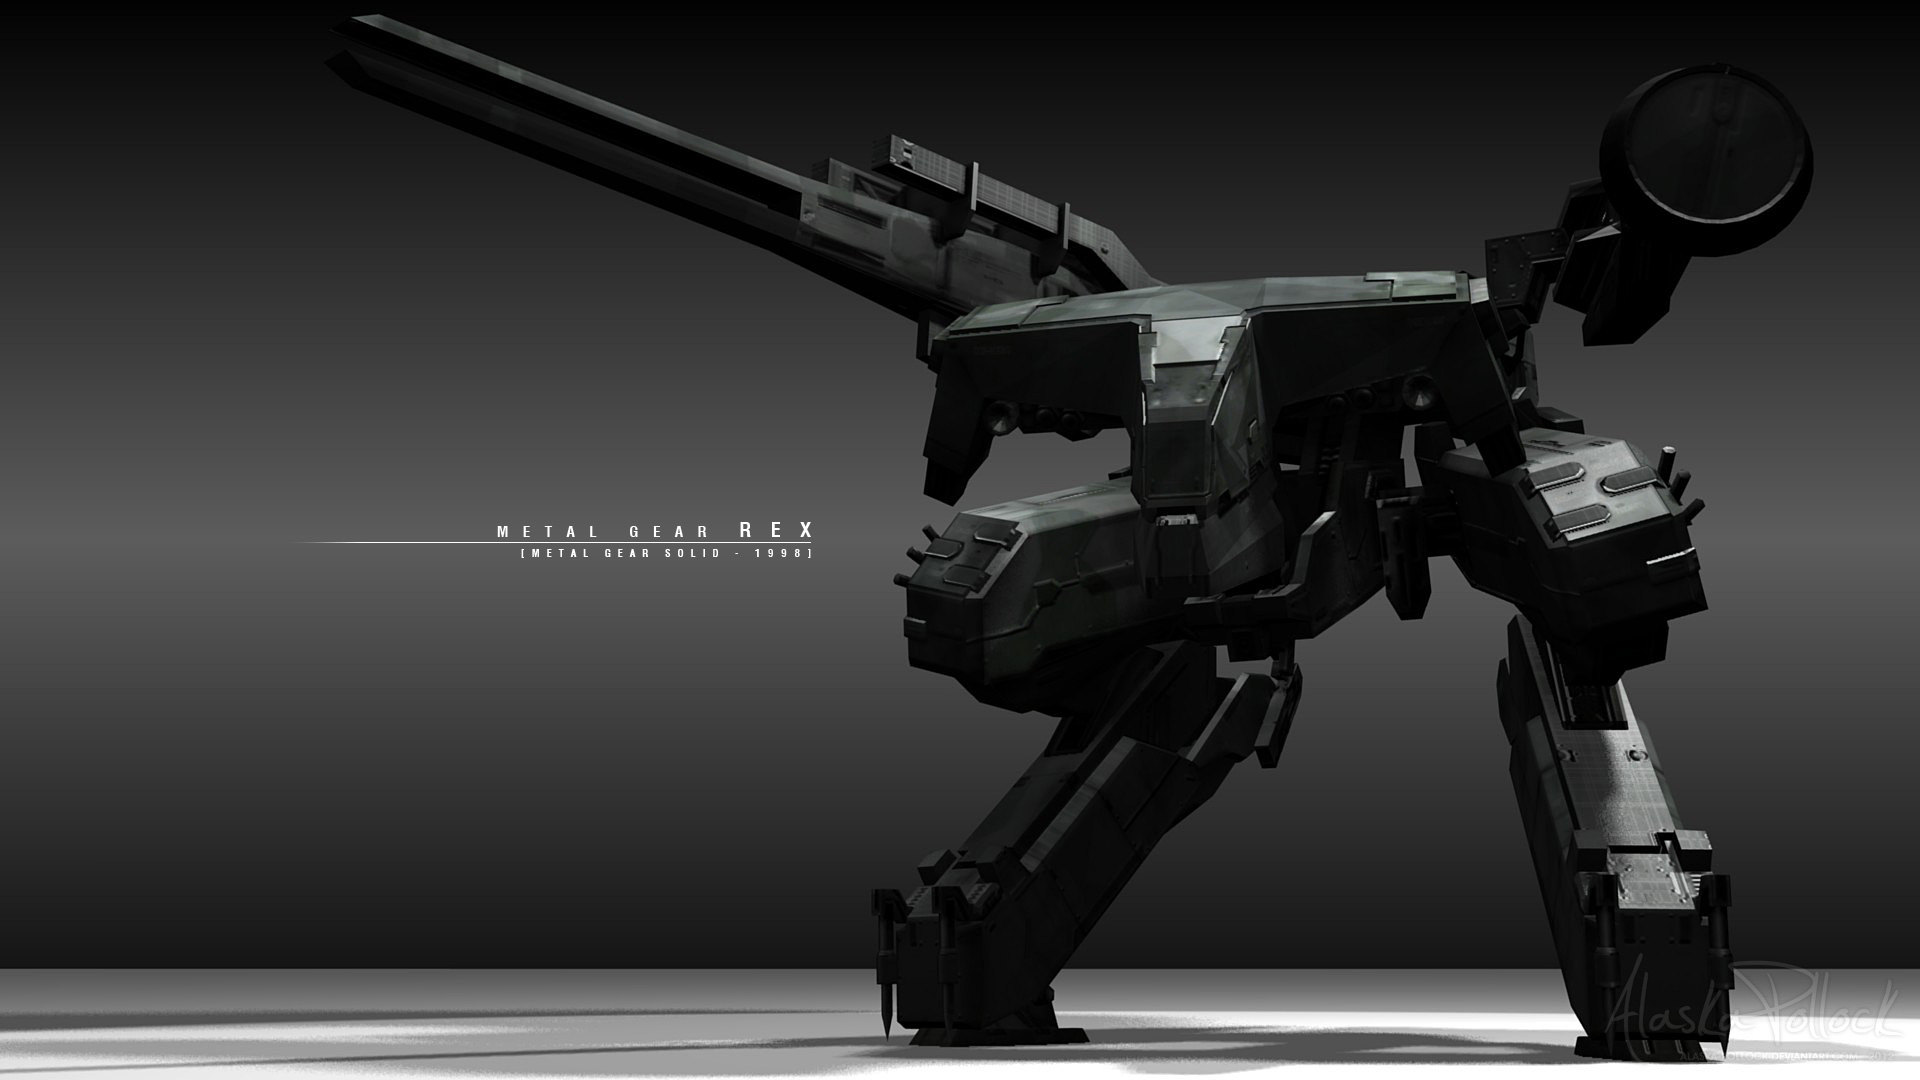 Metal Gear Rex Wallpaper